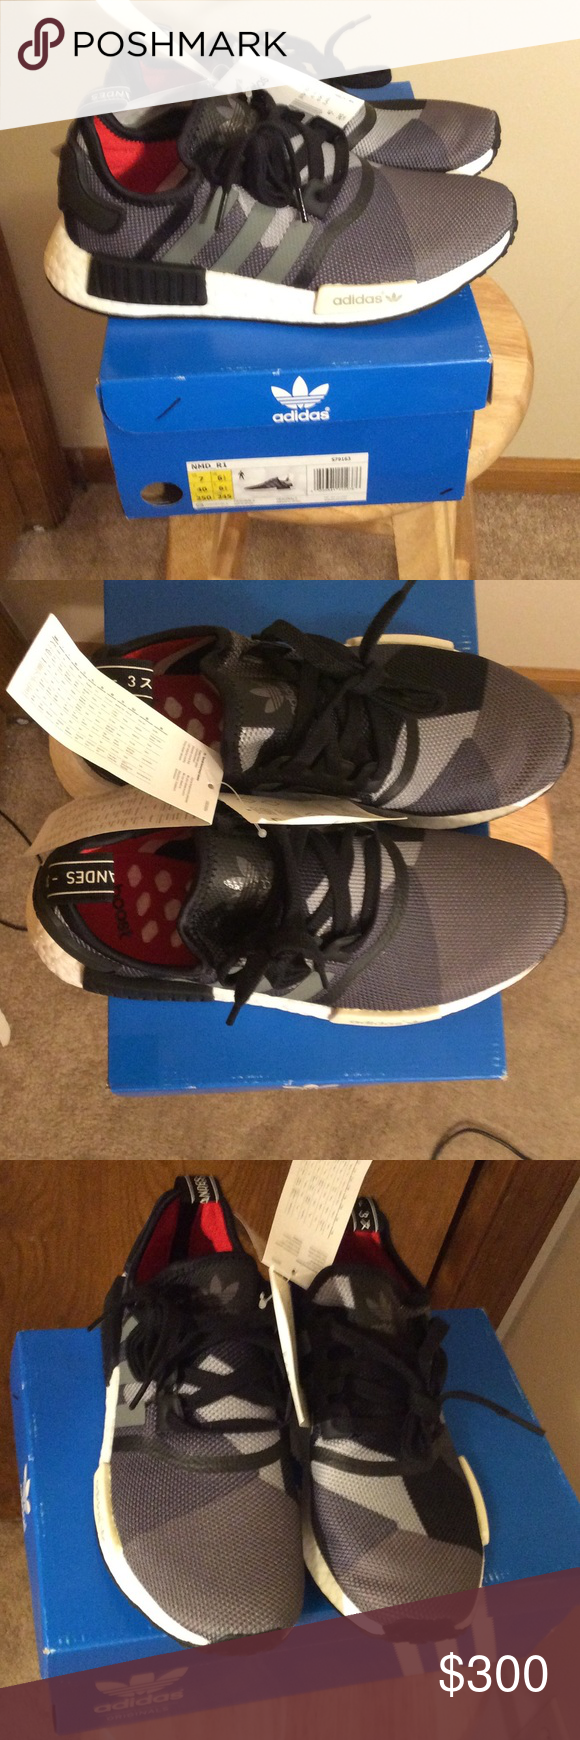 8176d1014 Adidas NMD R1 Size 6 women very rare NMDs ignore the price listing for  better prices --  kicksnmore(AT)yahoo.com Adidas Shoes Athletic Shoes